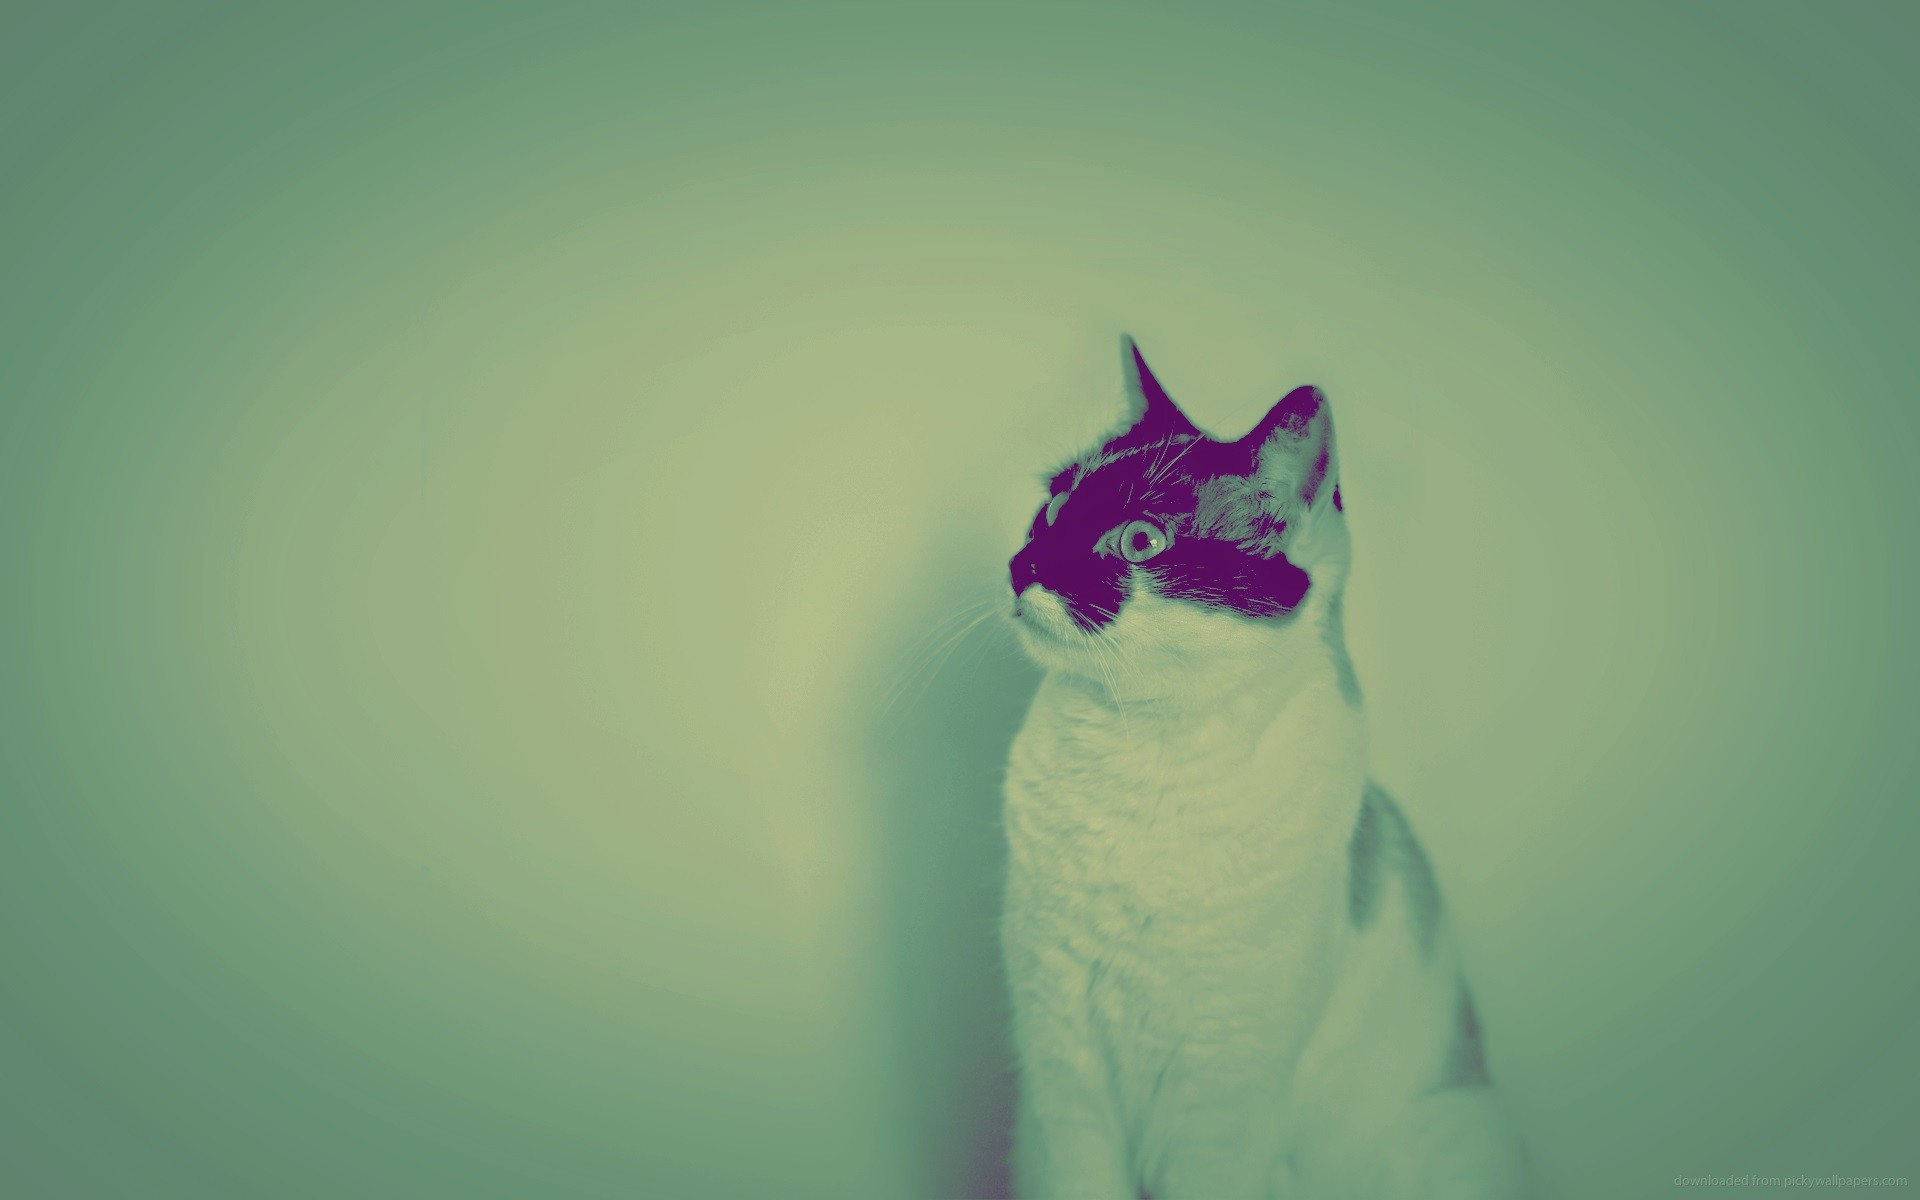 white-images2-alphacoders-wallpaper-black-photography-cat-photo-